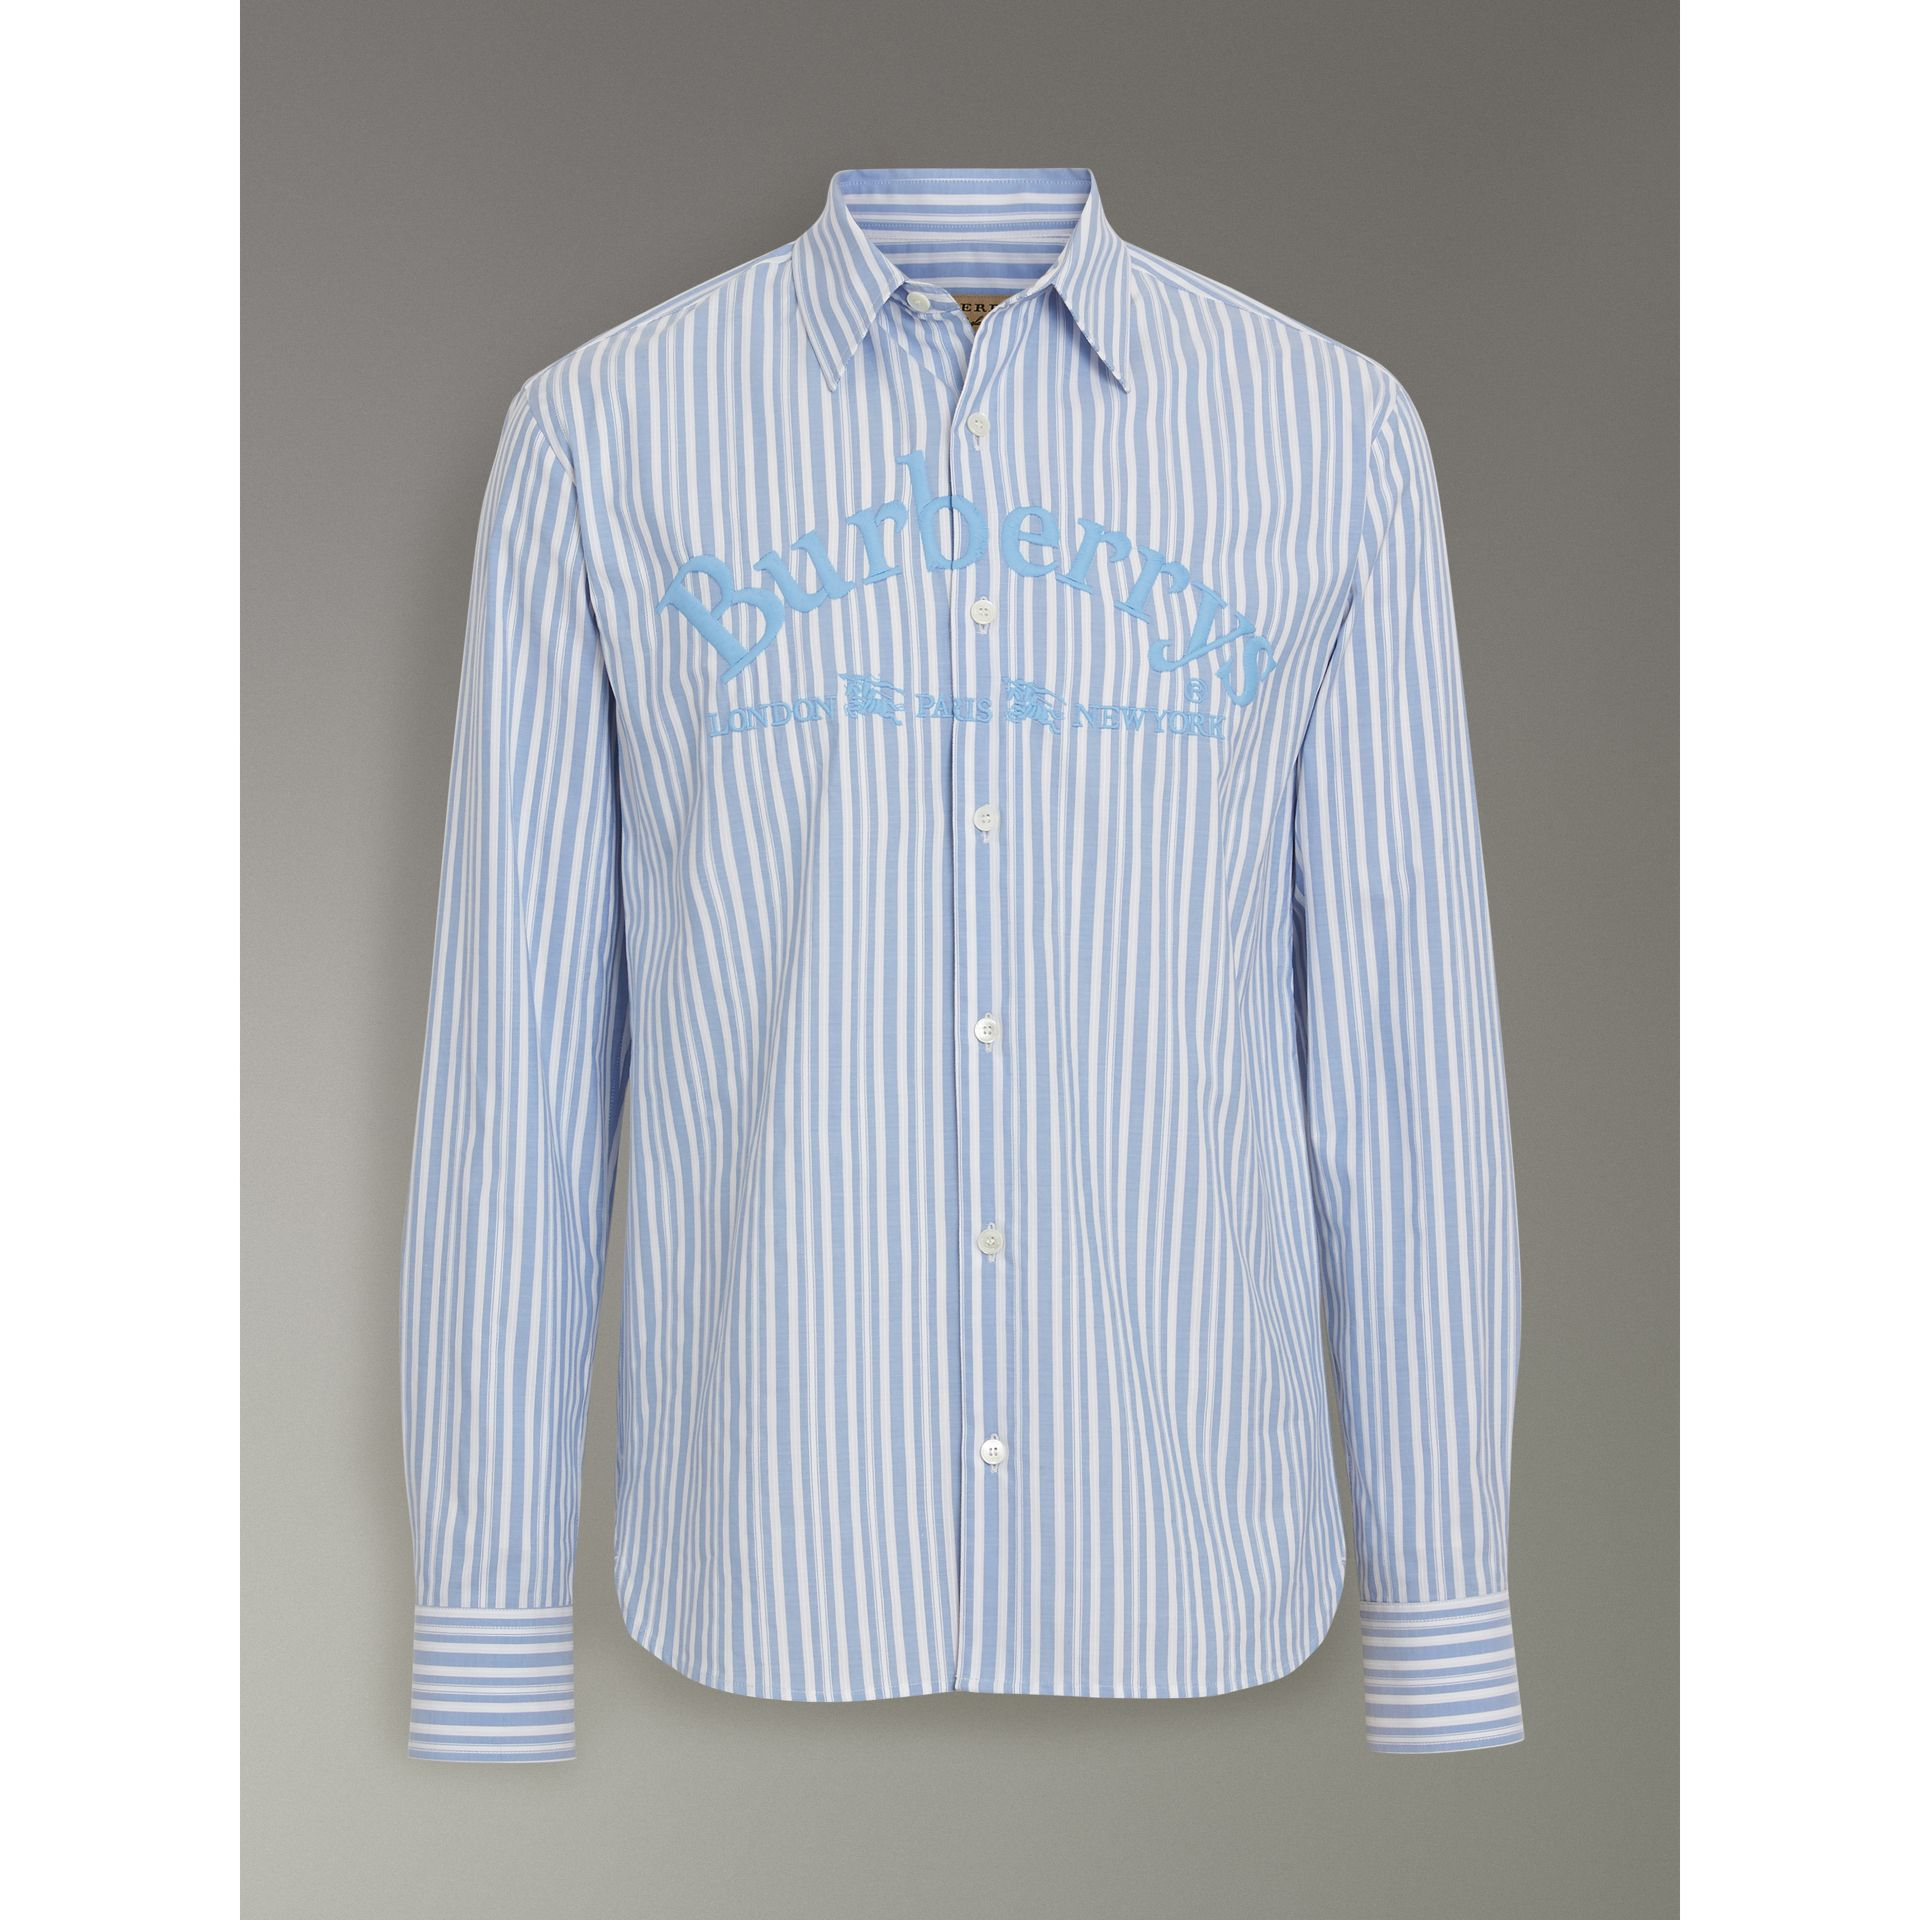 Embroidered Archive Logo Striped Cotton Shirt in Powder Blue - Men | Burberry - gallery image 3